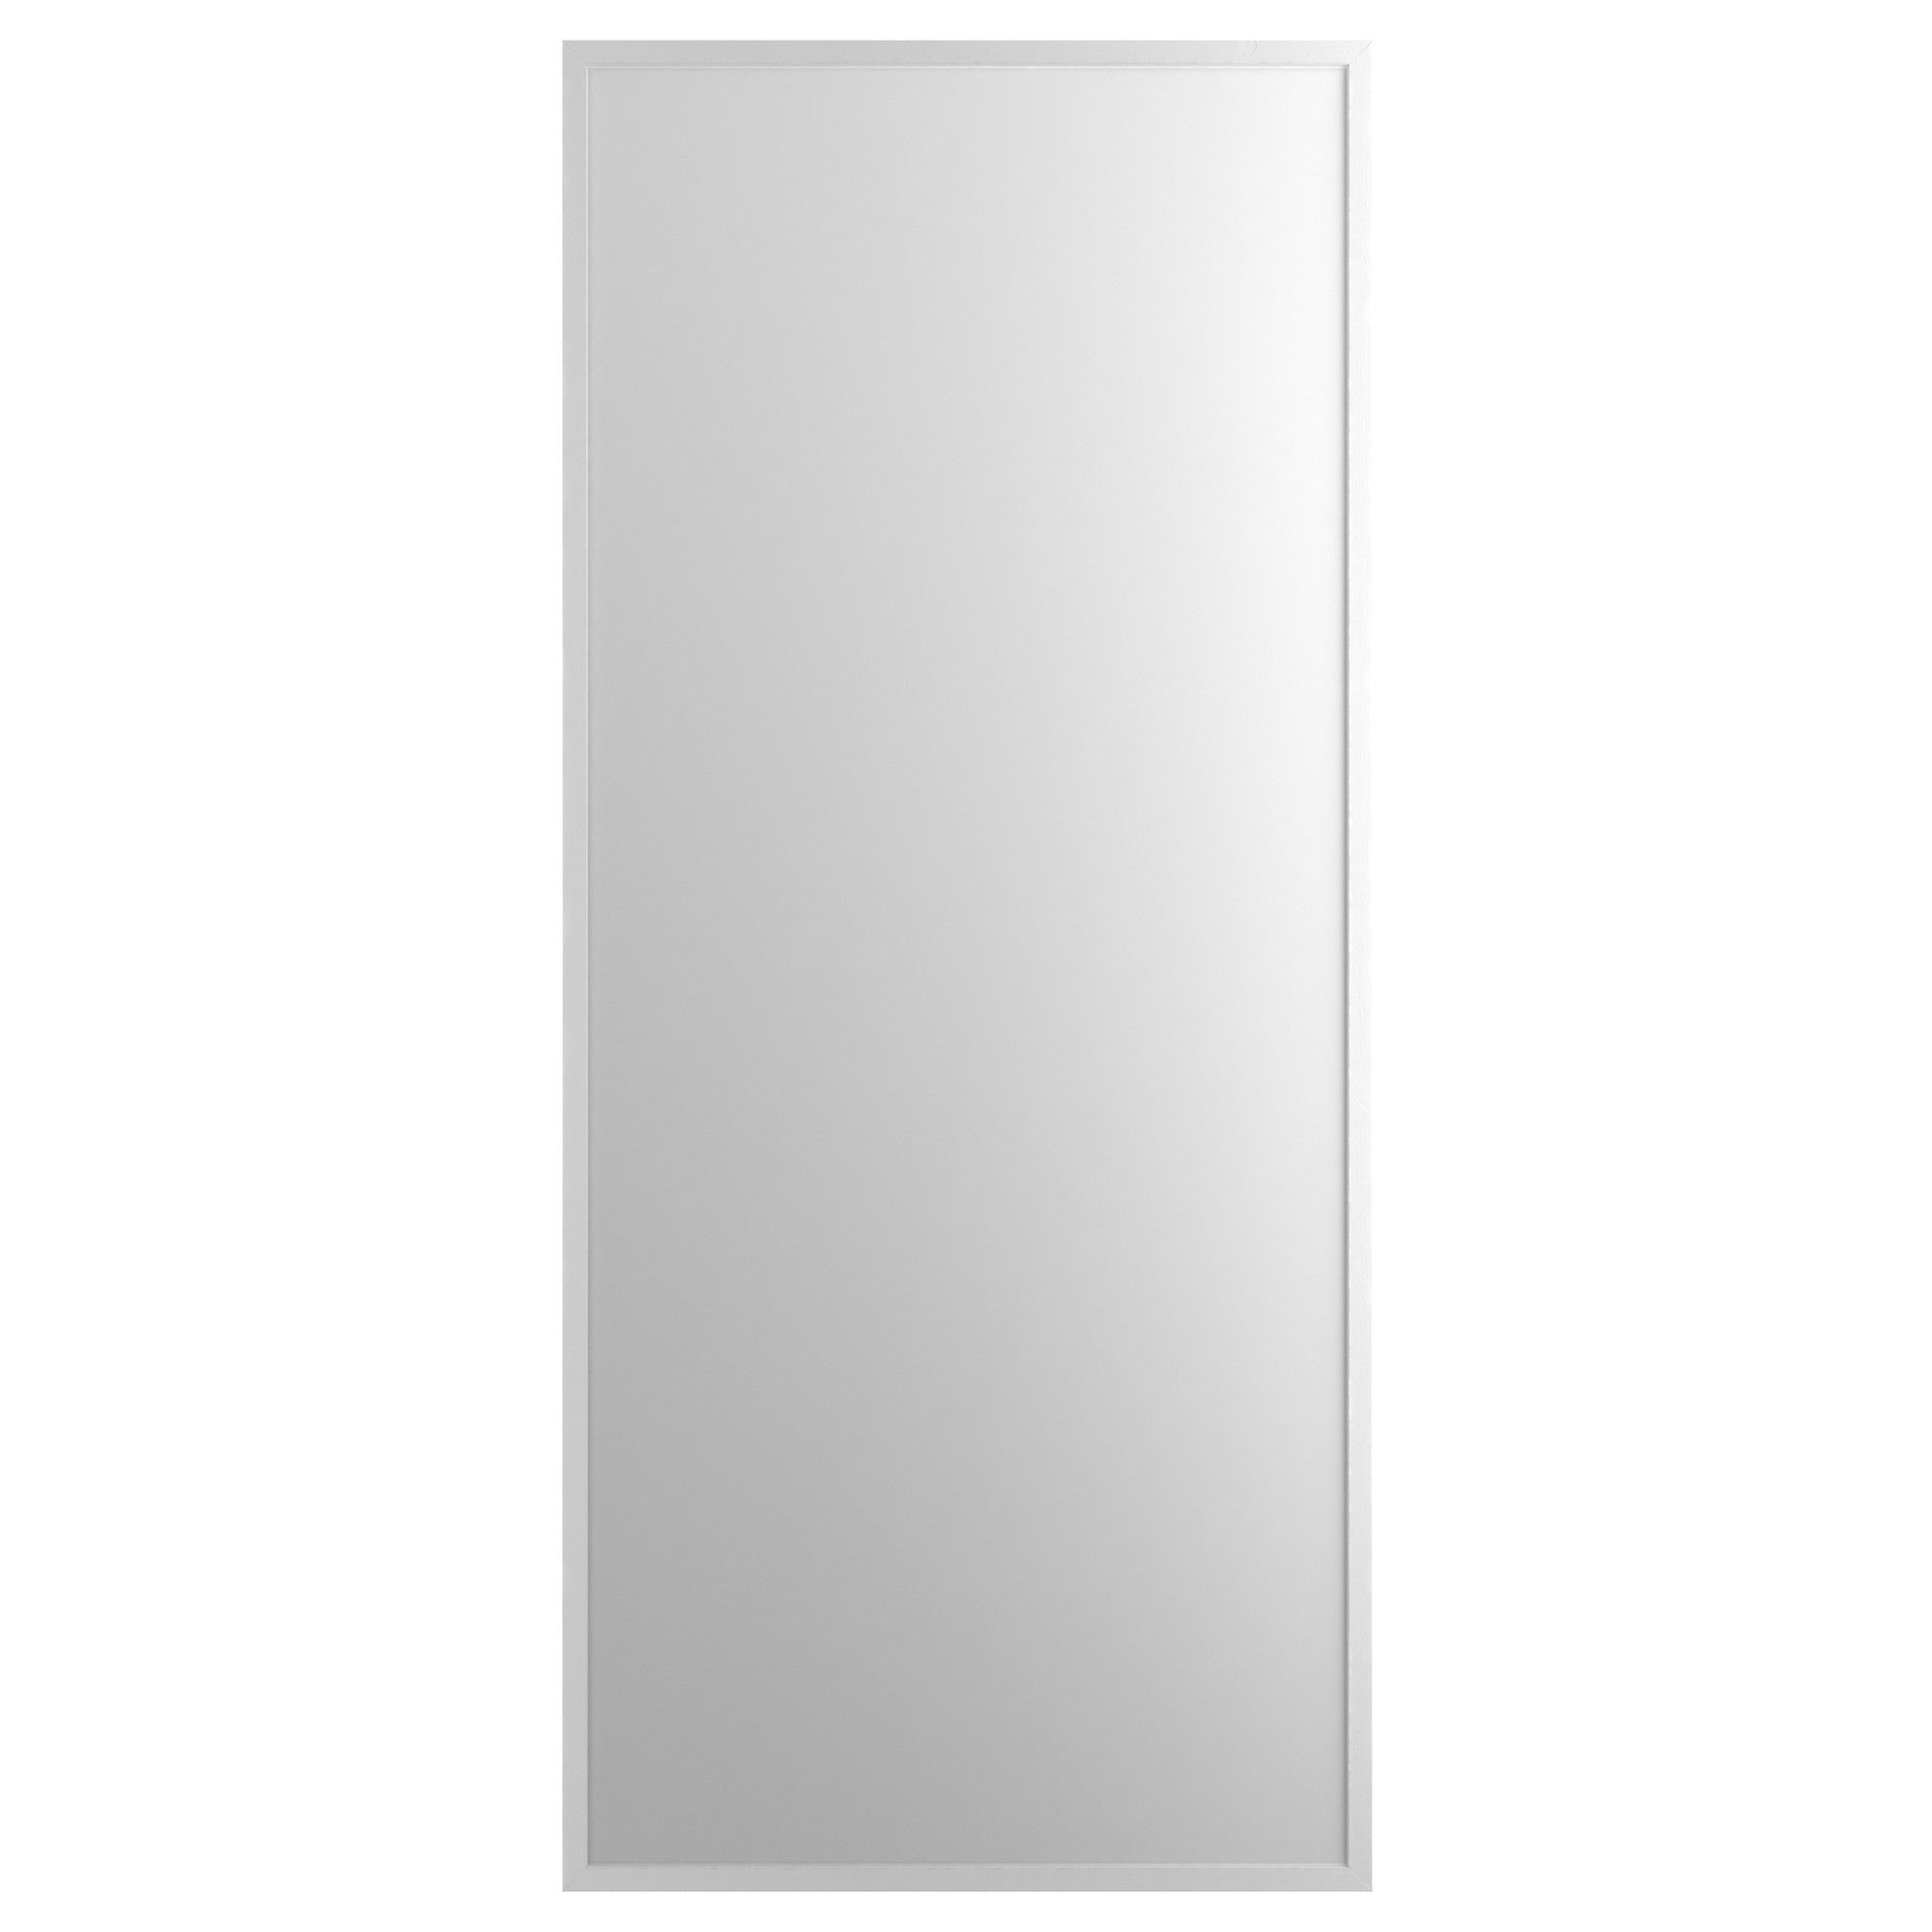 miroir mural ikea stave miroir blanc x cm ikea uac with. Black Bedroom Furniture Sets. Home Design Ideas